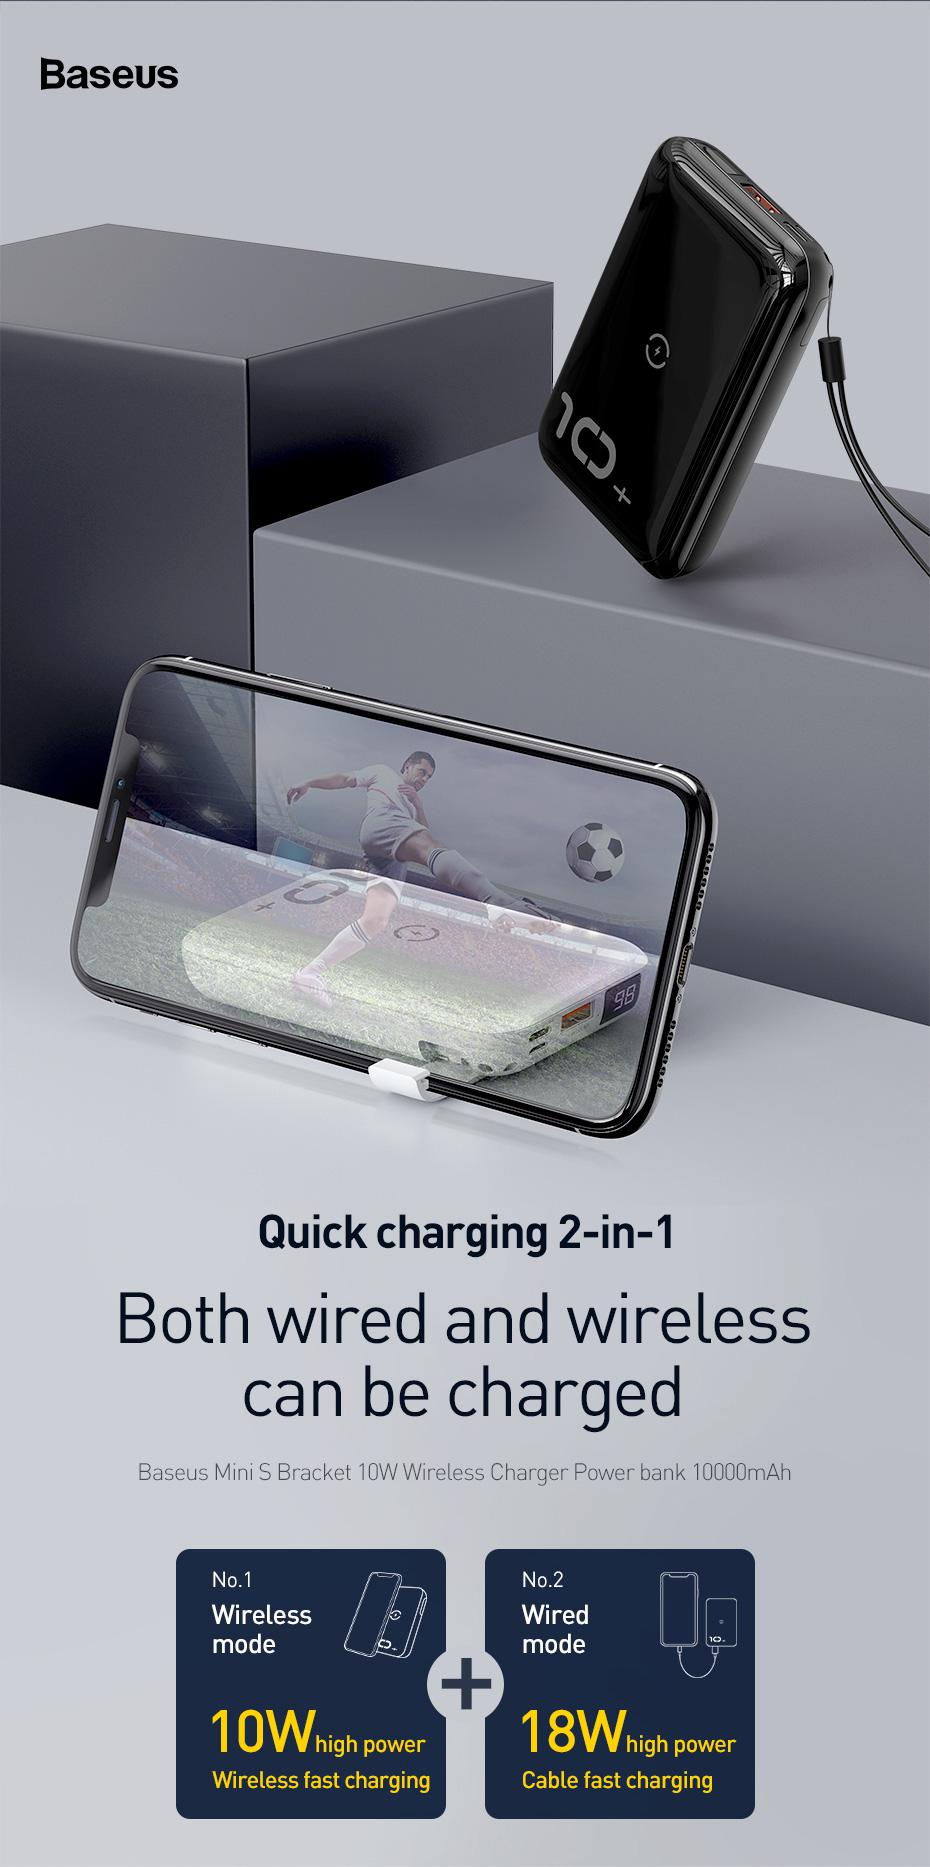 USB C//A Fast Charging with 18W PD3.0 QC 3.0//2.0 Quick Charge Battery Pack Compatible with iPhone 12//12 Mini//12 Pro Max and Other iPhone Android Smartphones JDB PD//QC Portable Charger 10000mAh